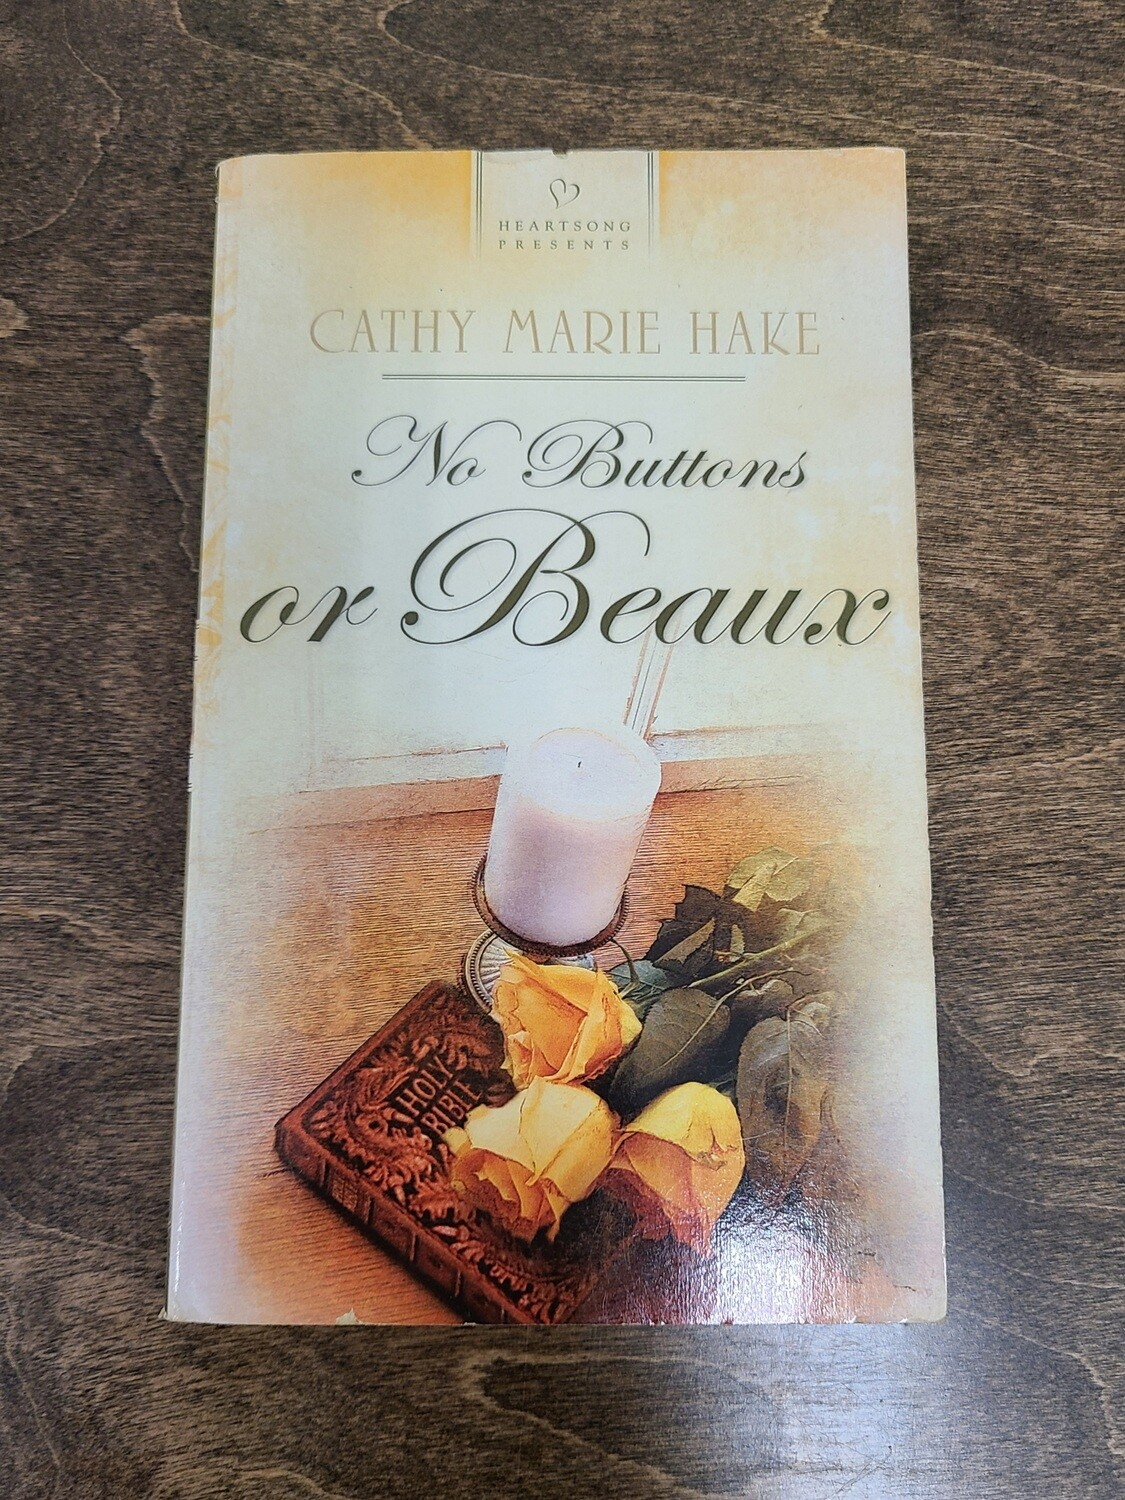 No Buttons or Beaux by Cathy Marie Hake